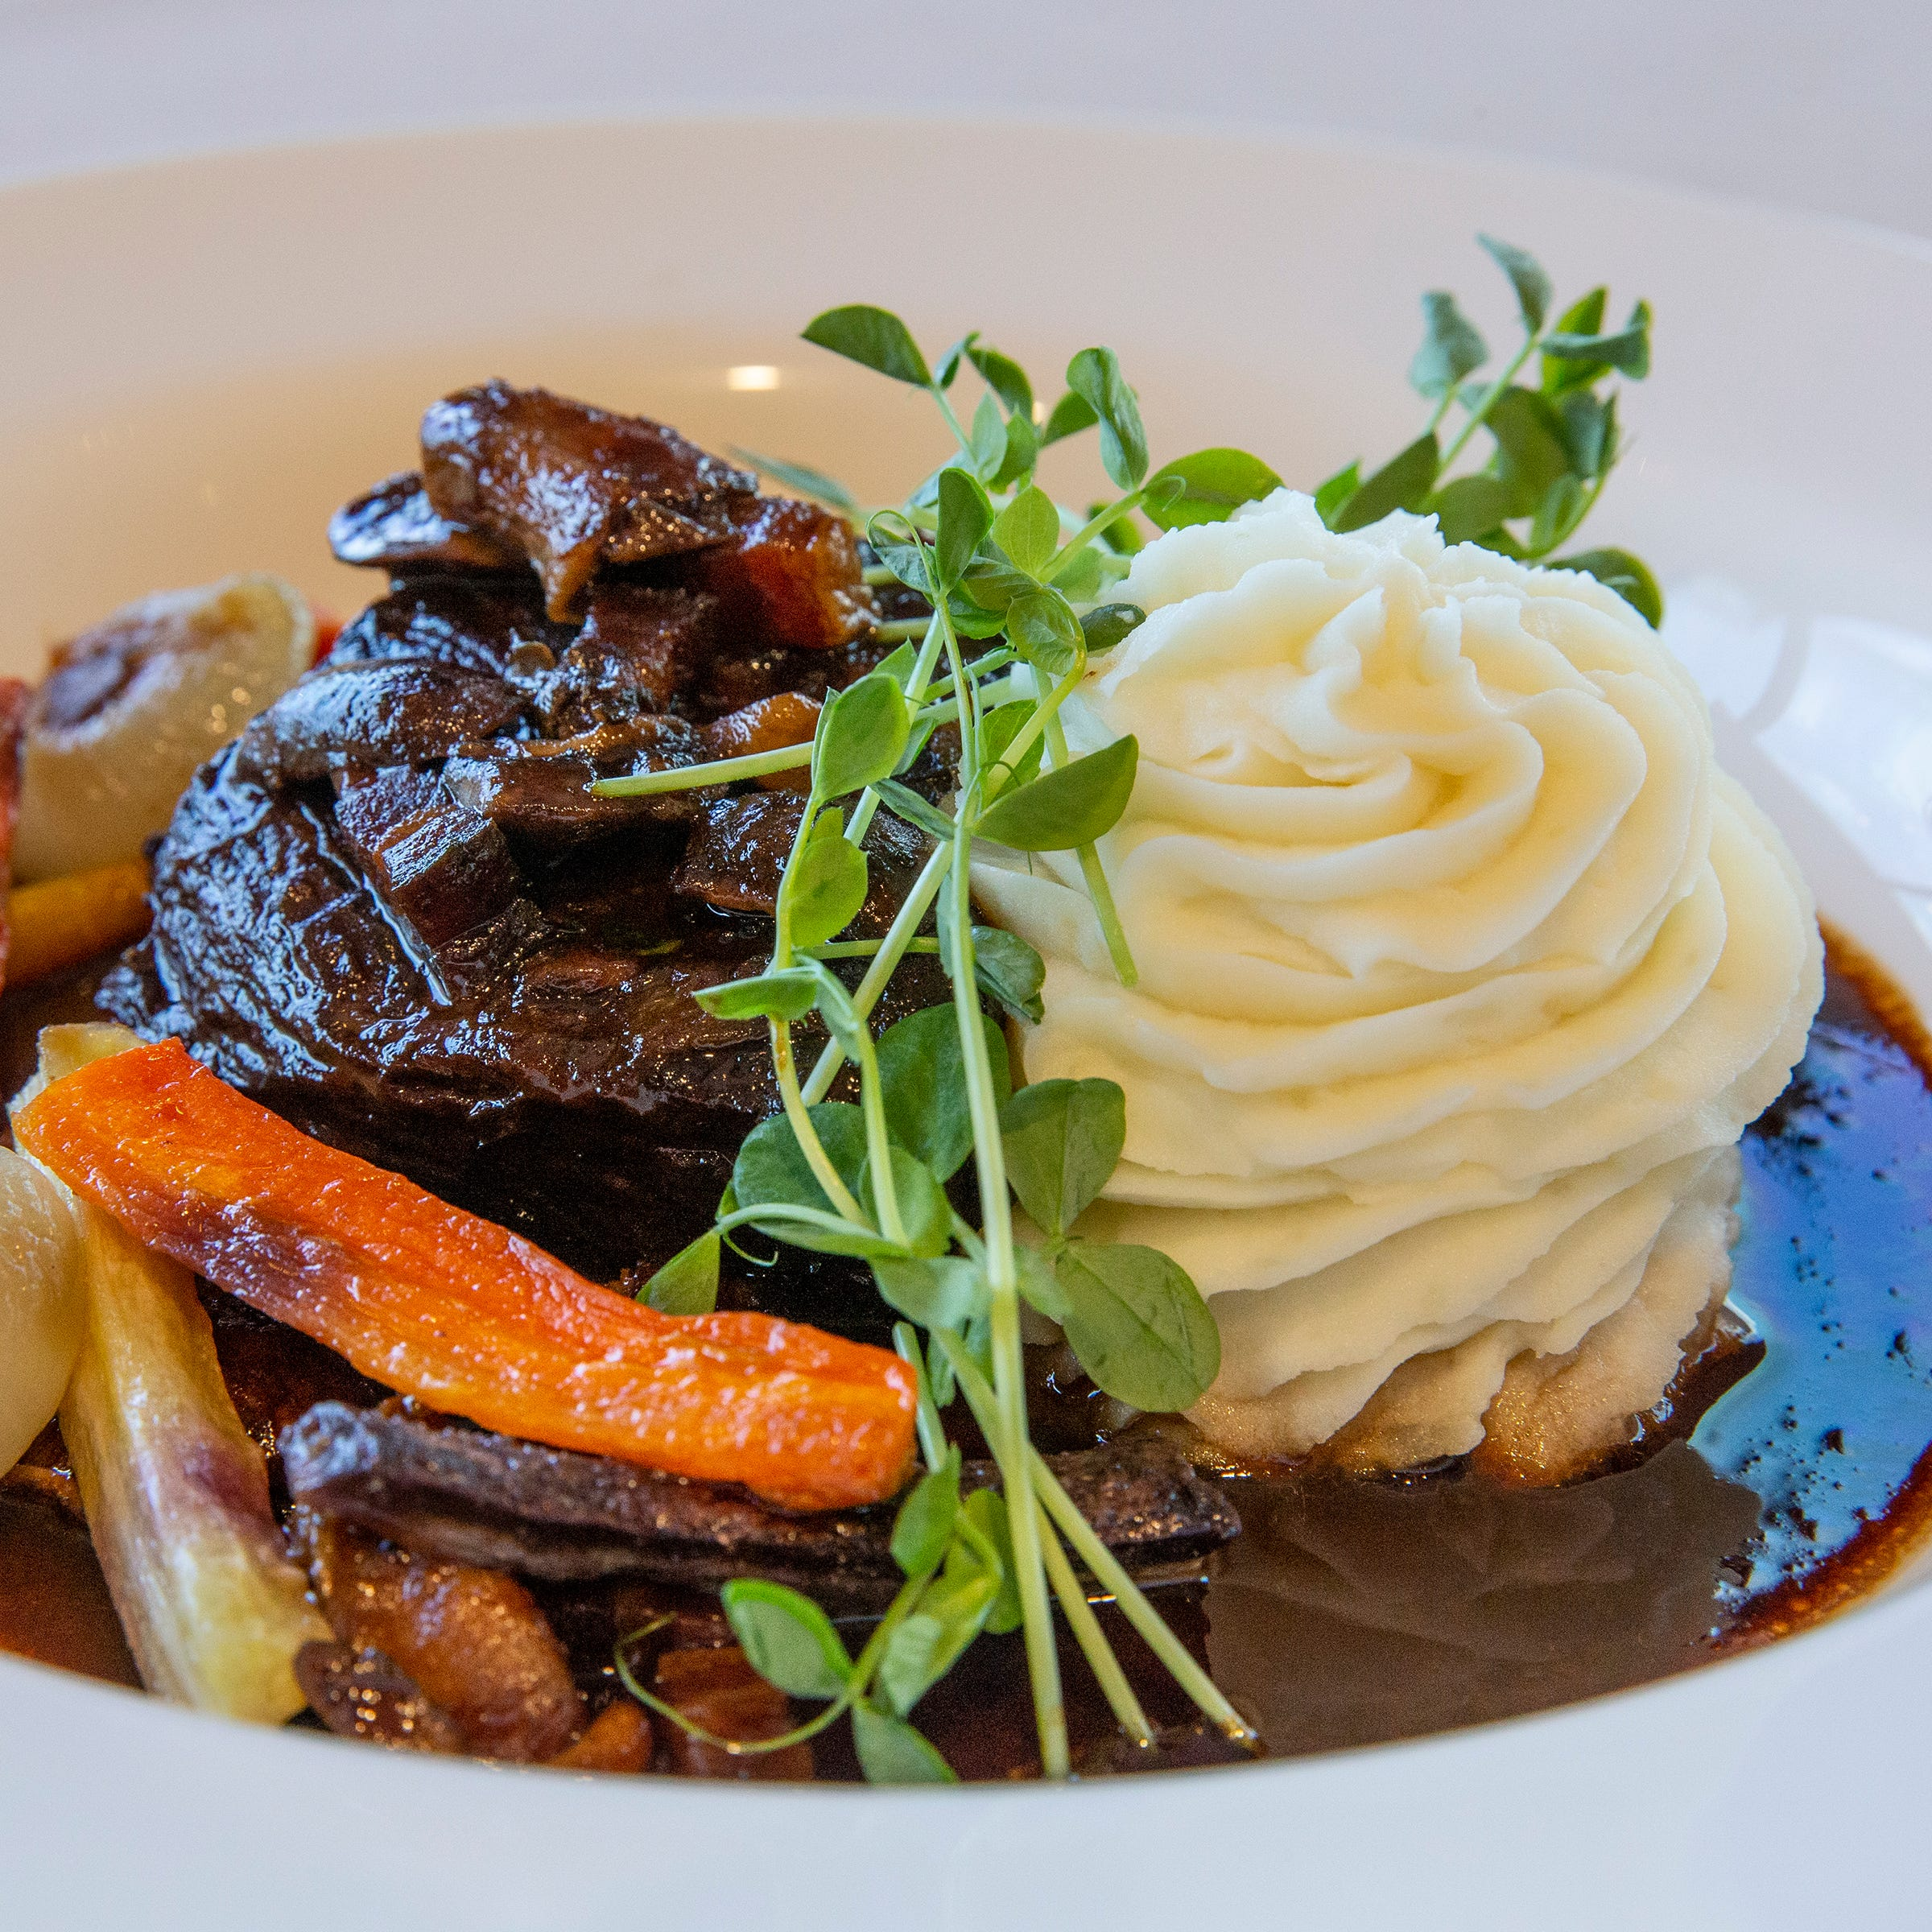 Anoosh Bistro serves up delicious classics with touch of global influence